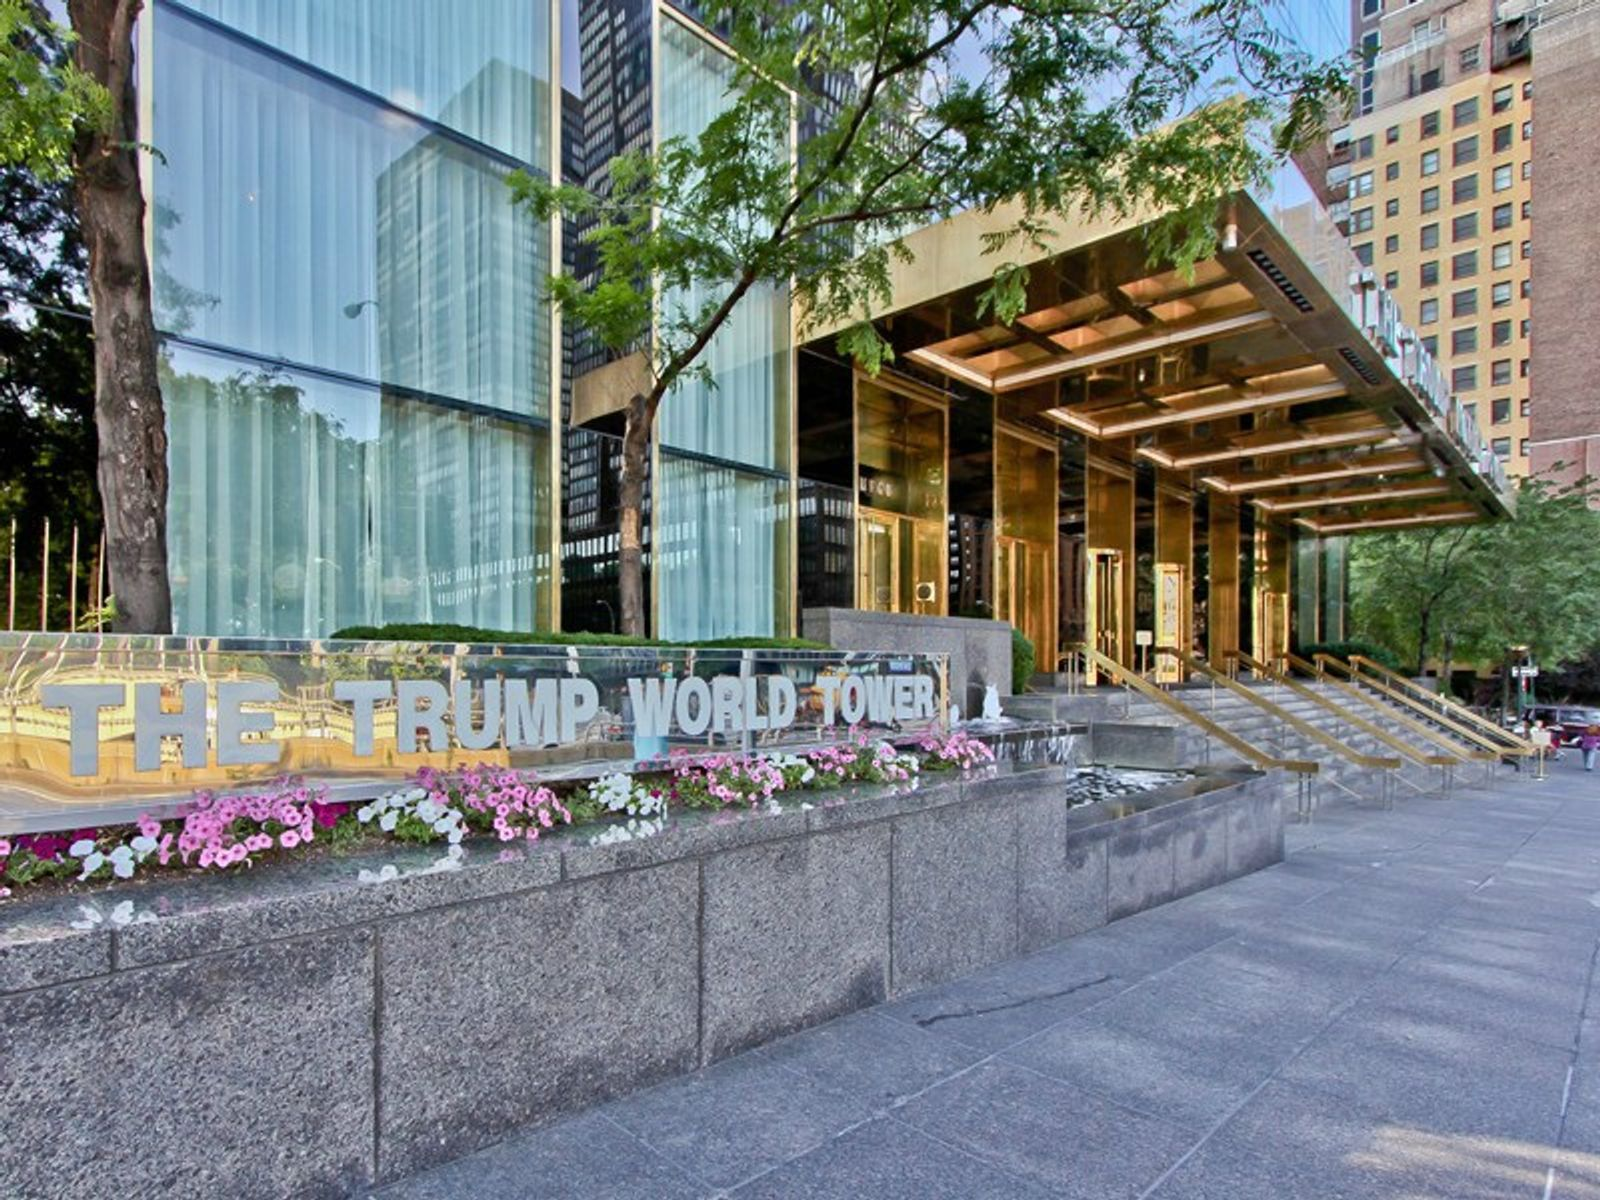 845 United Nations Plaza, New York NY Condominium - New York City Real Estate